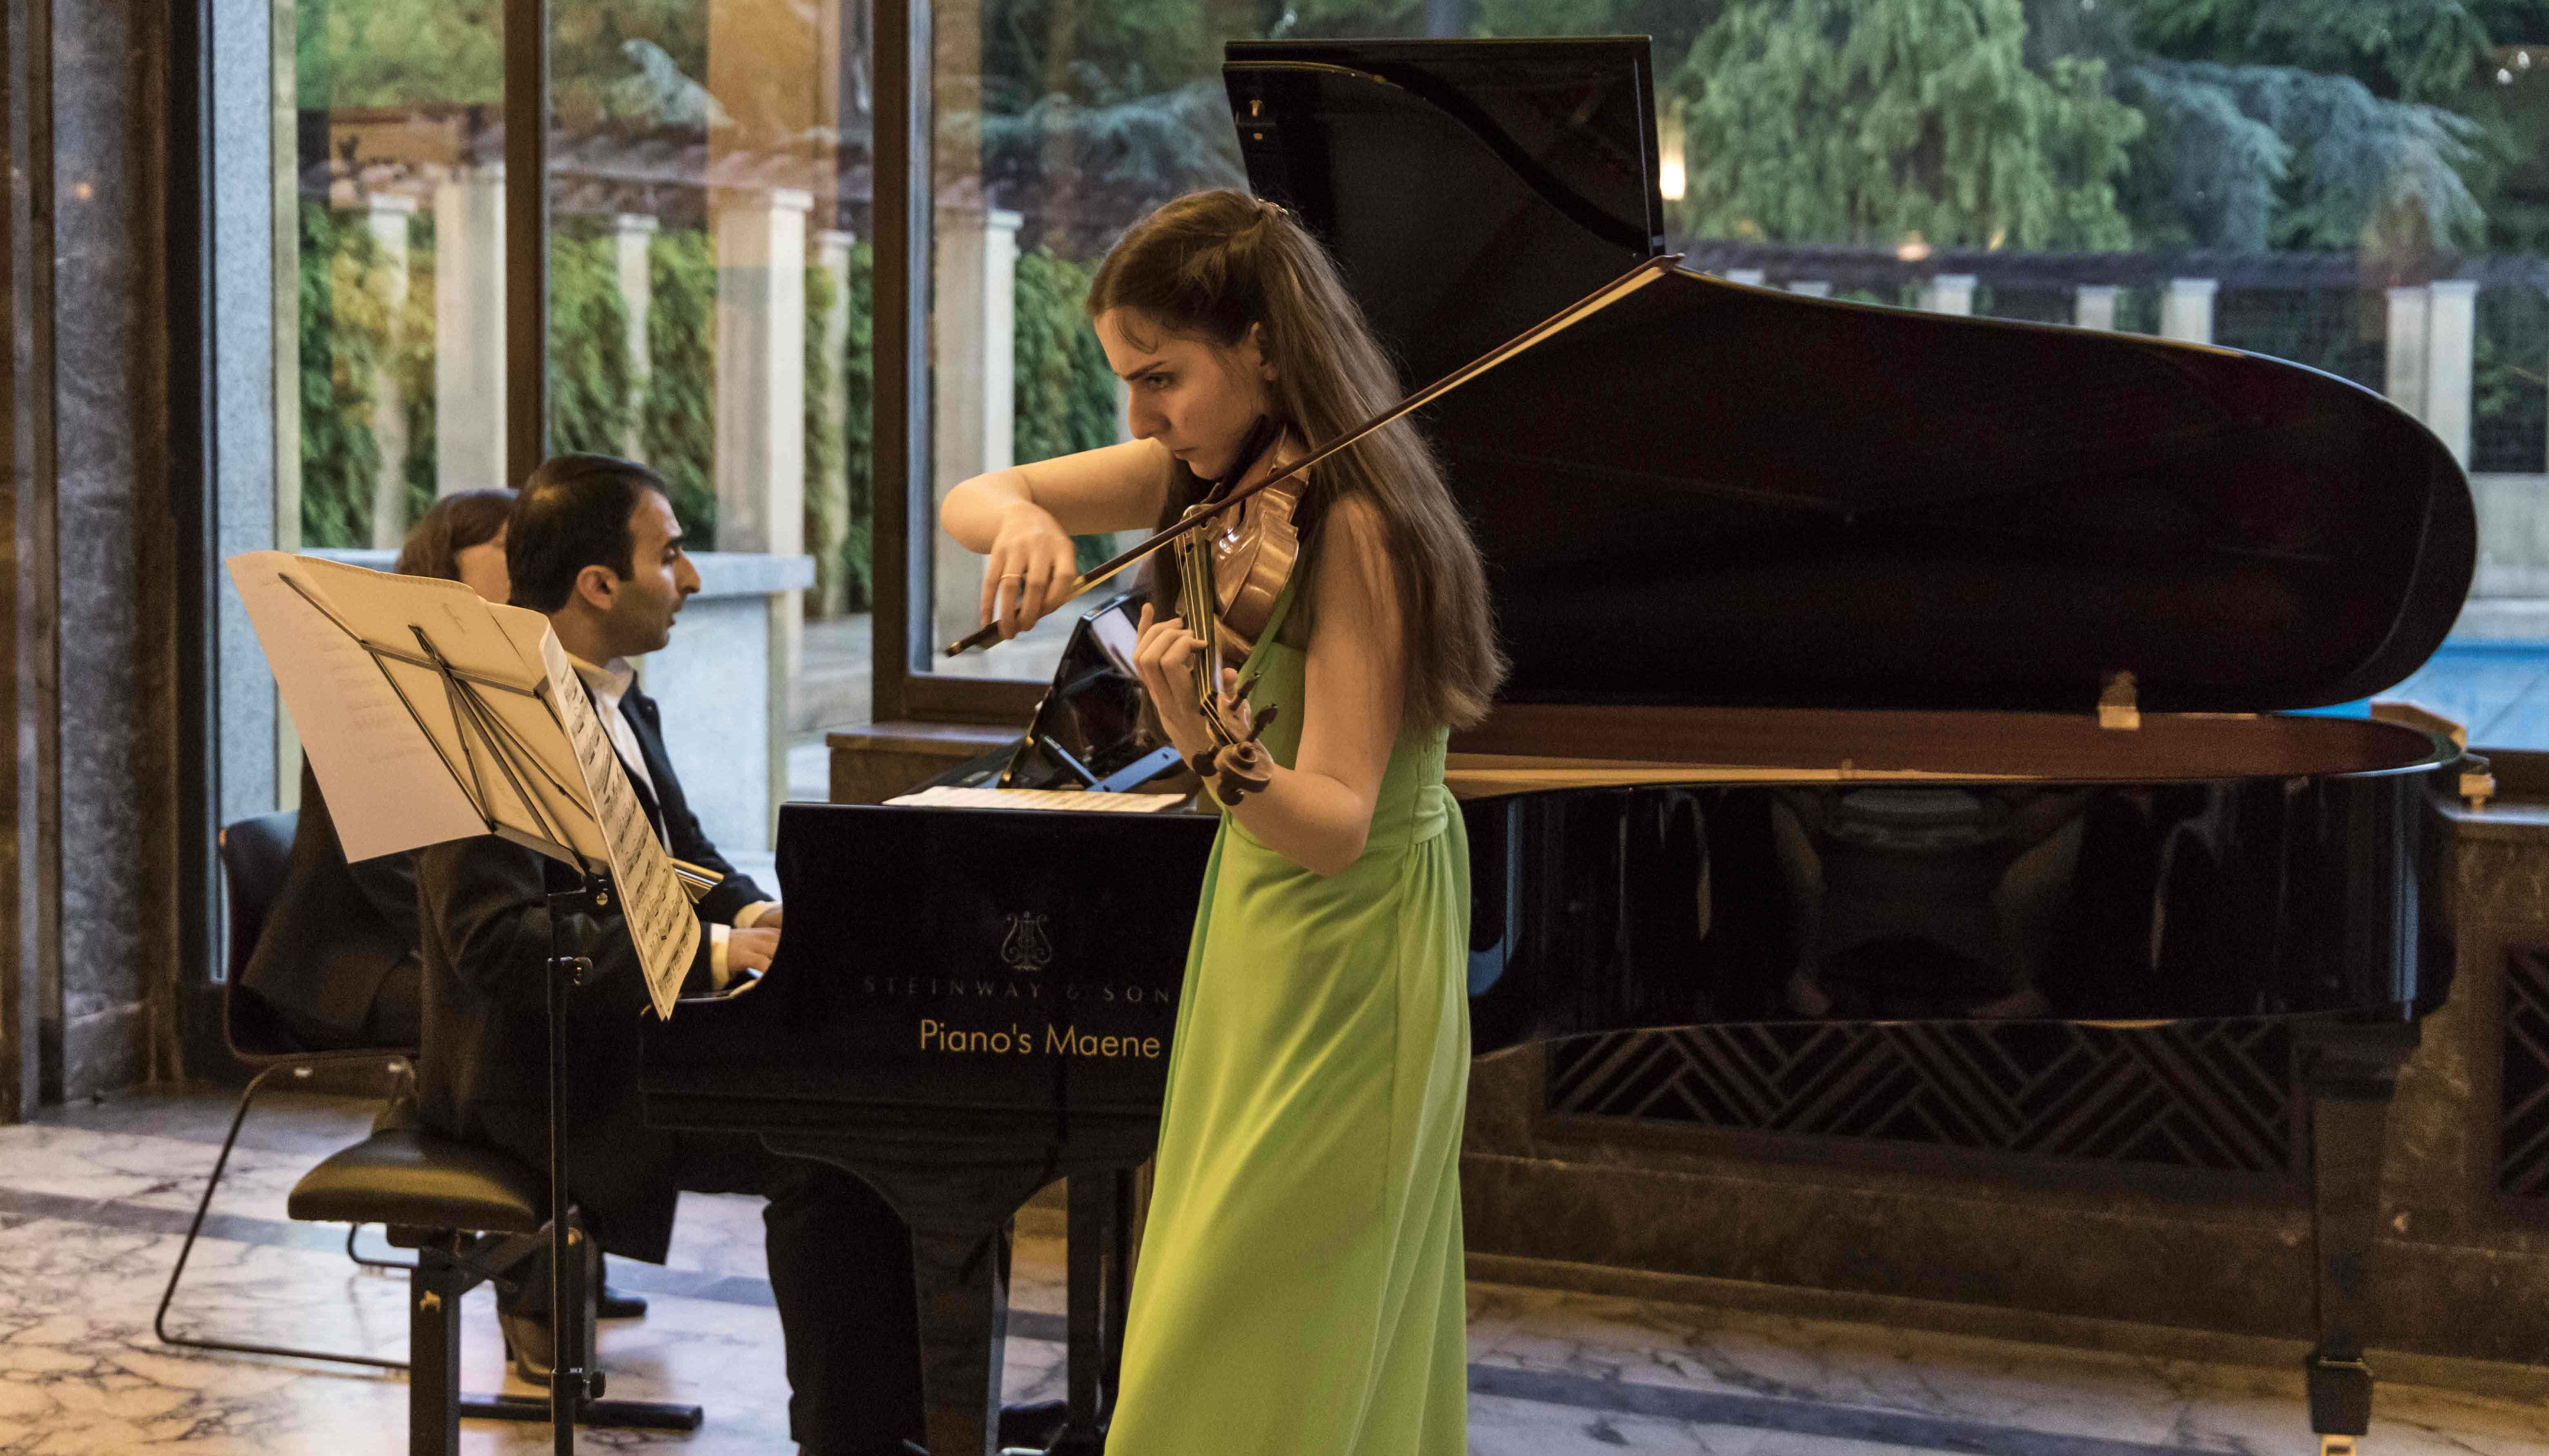 Concert Series in Brussels to Benefit Rising Talents in Armenia